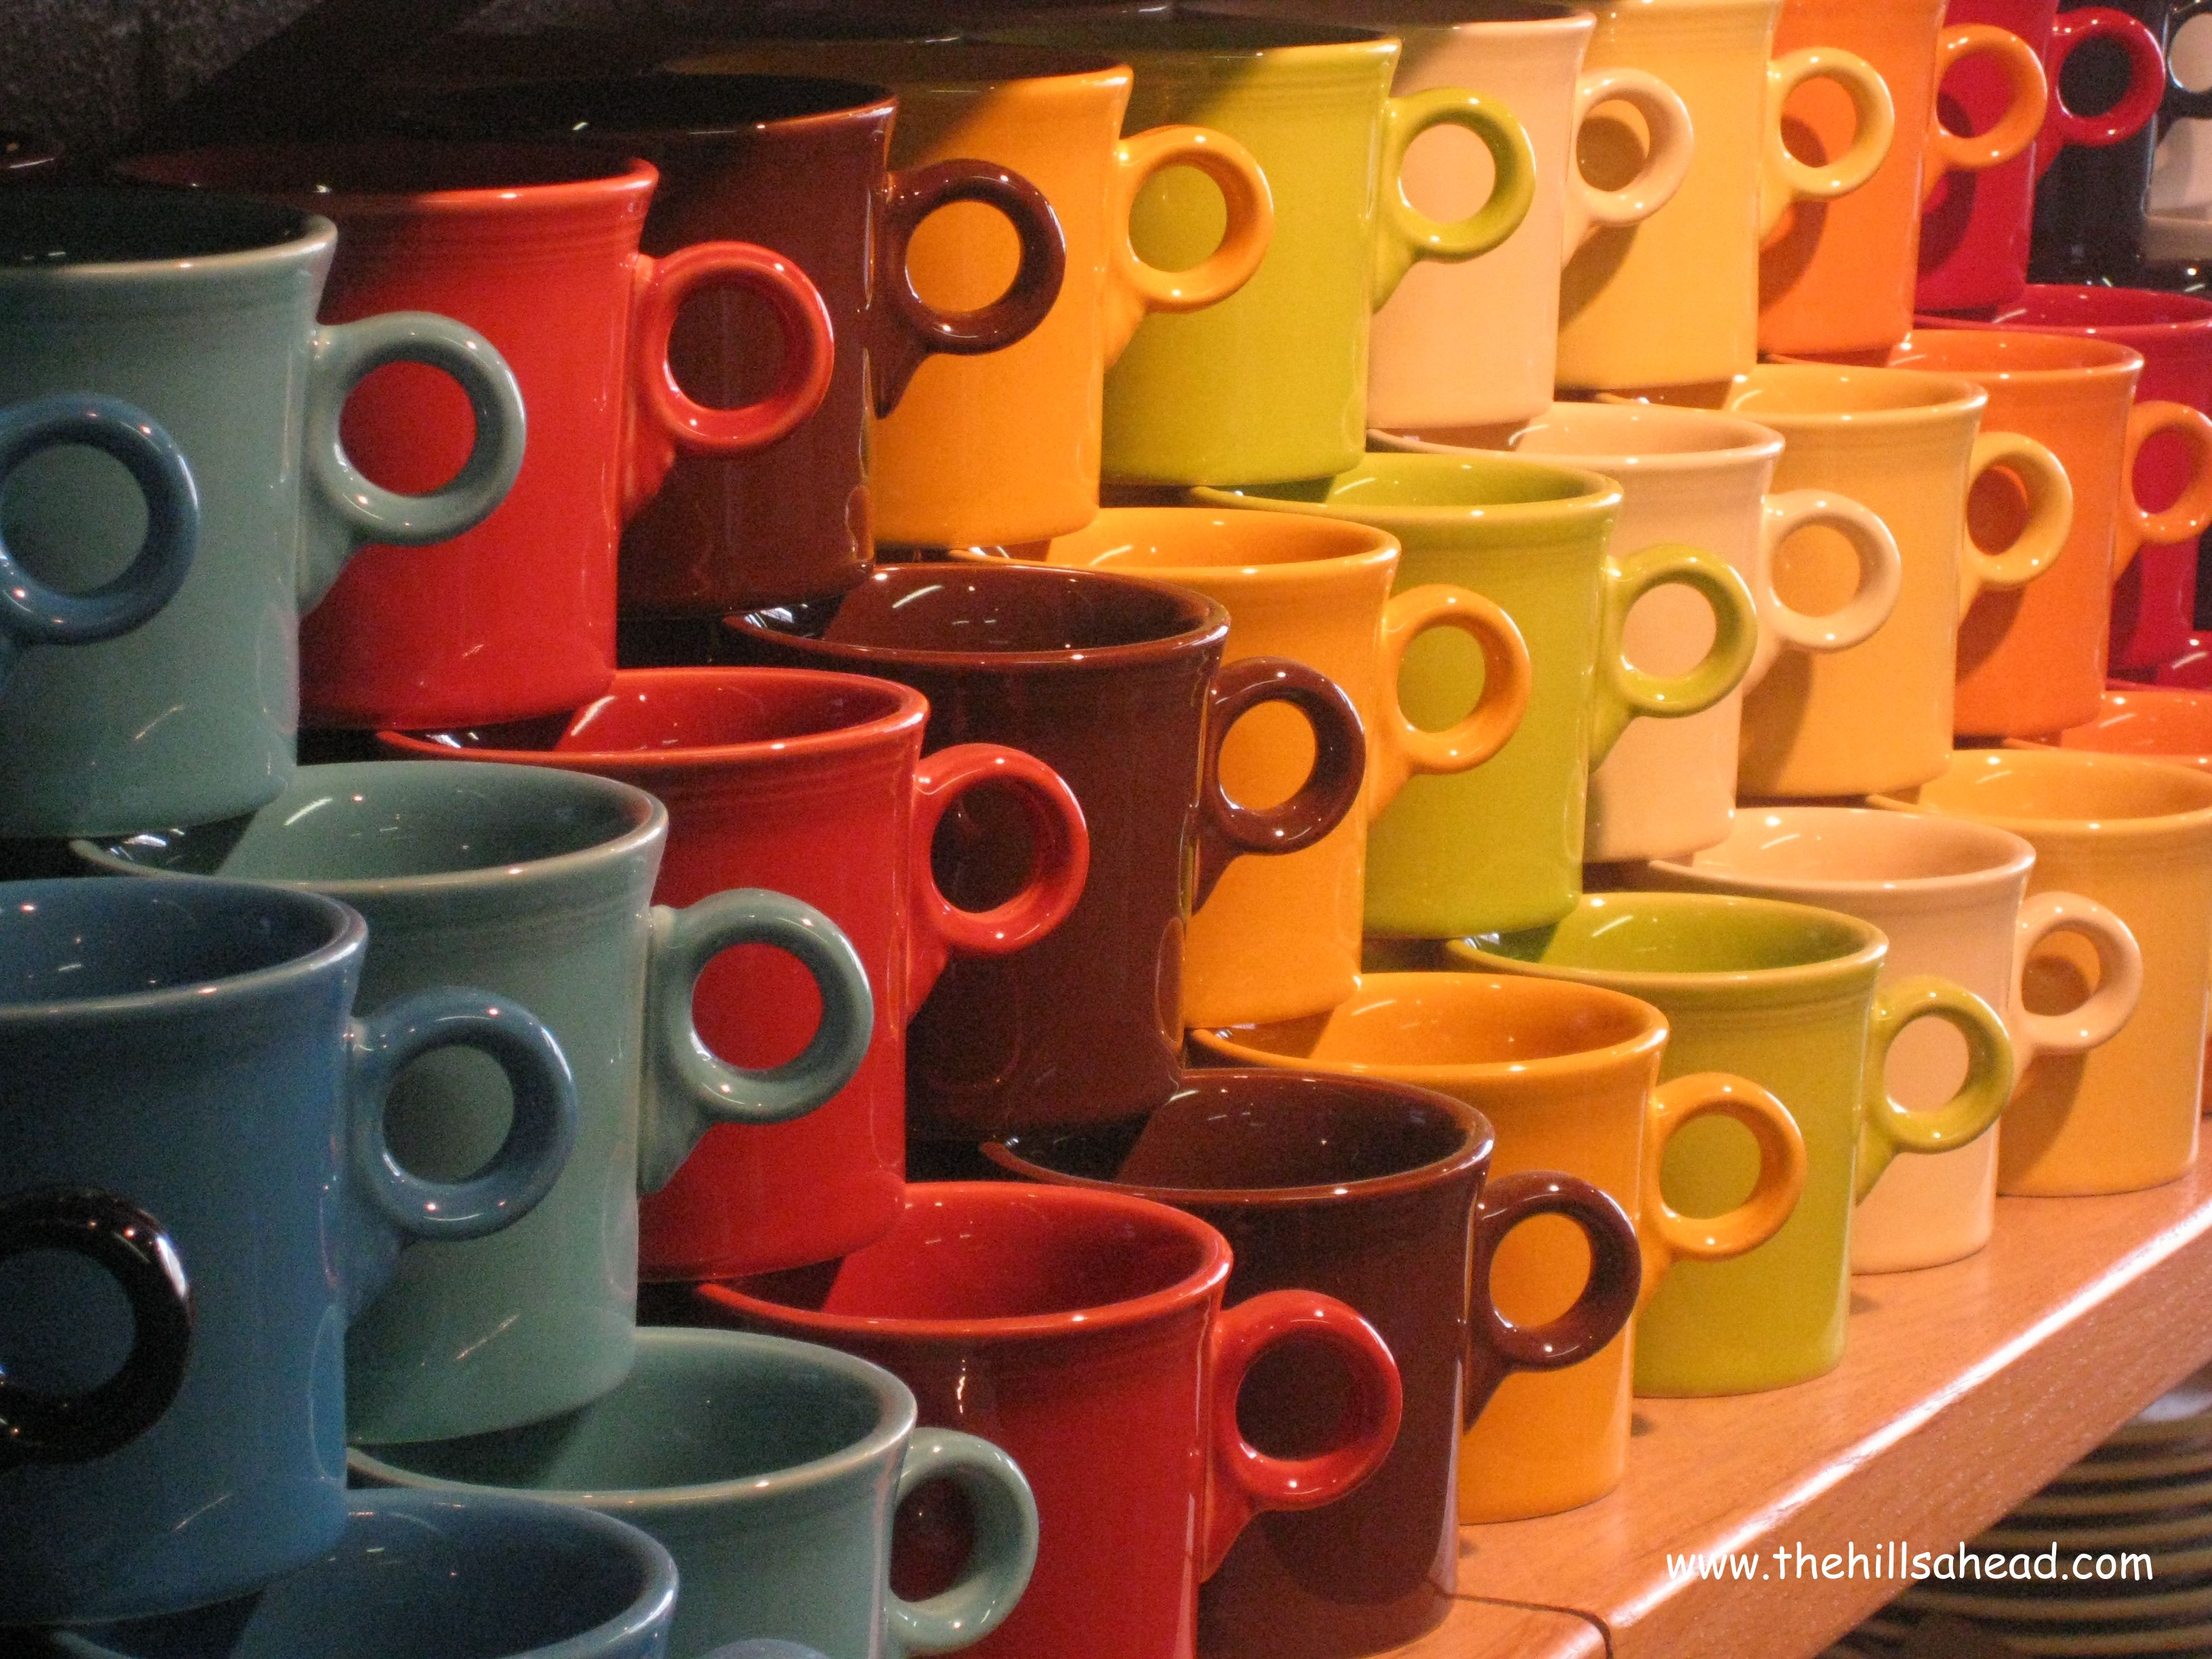 Awesome Collections Of Fiestaware For Dinnerware Ideas: Colorful Mug By Fiestaware For Drinkware Ideas